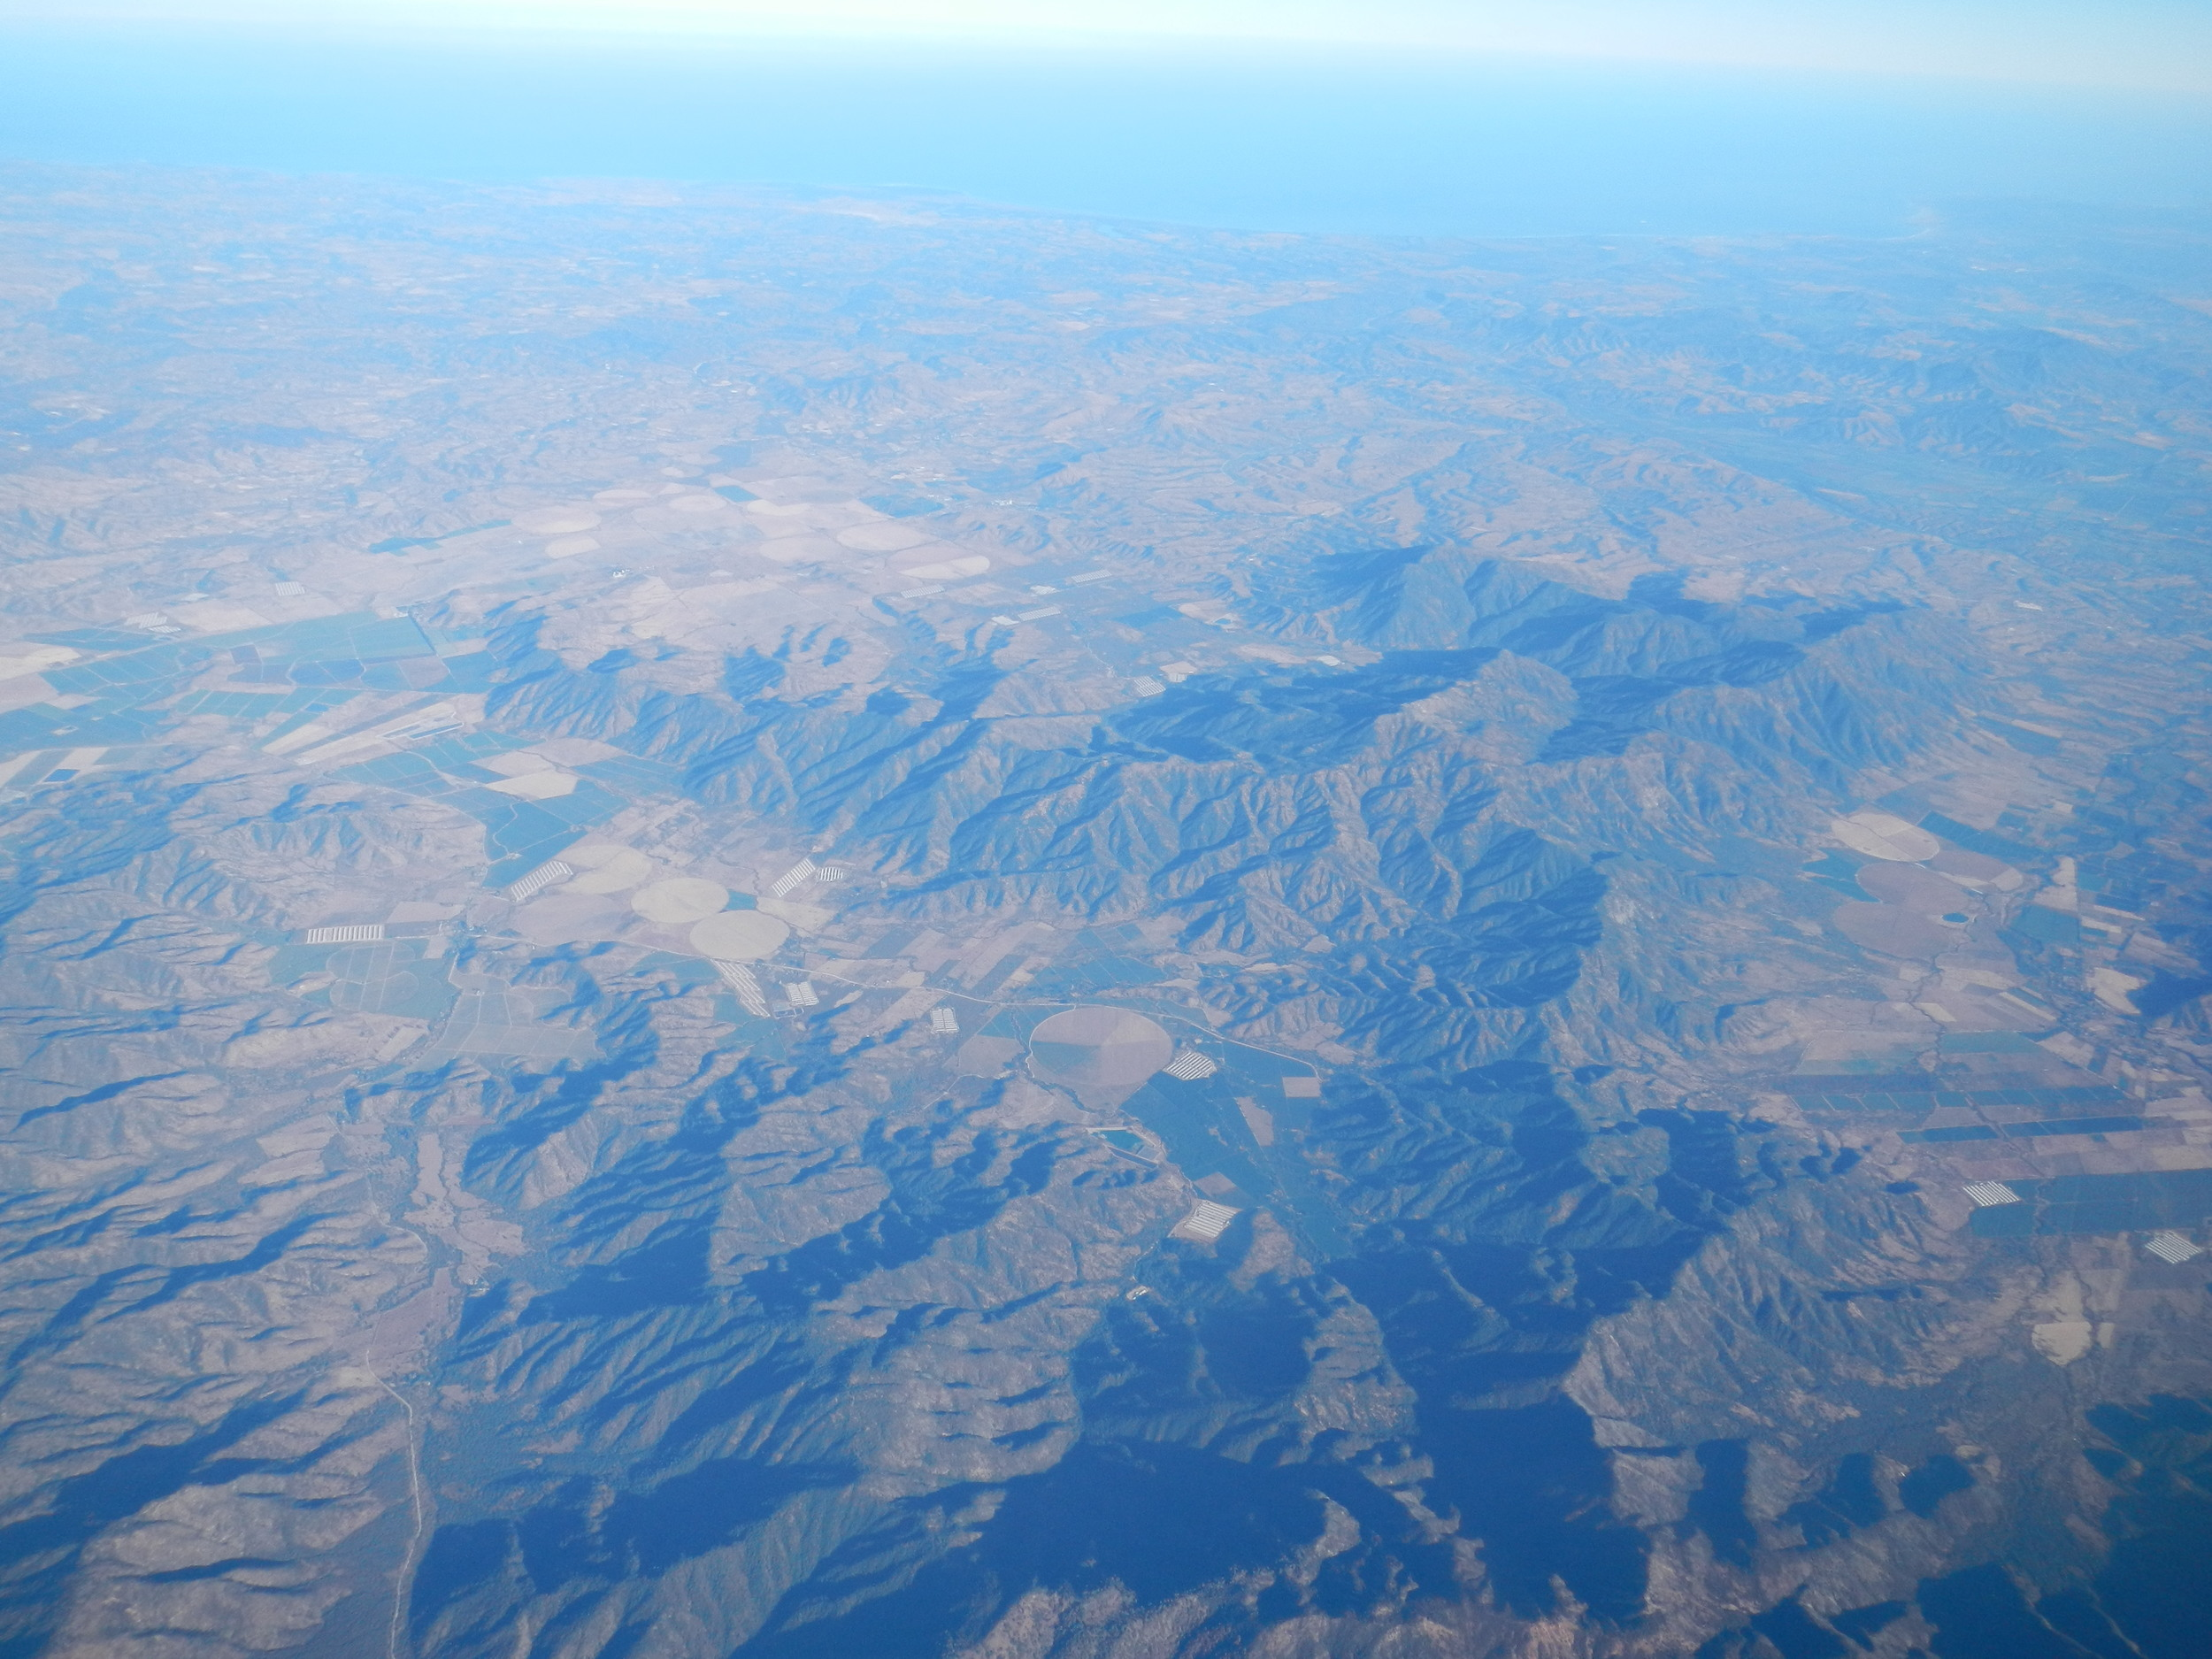 First view of Chile, 26 Mar 2012